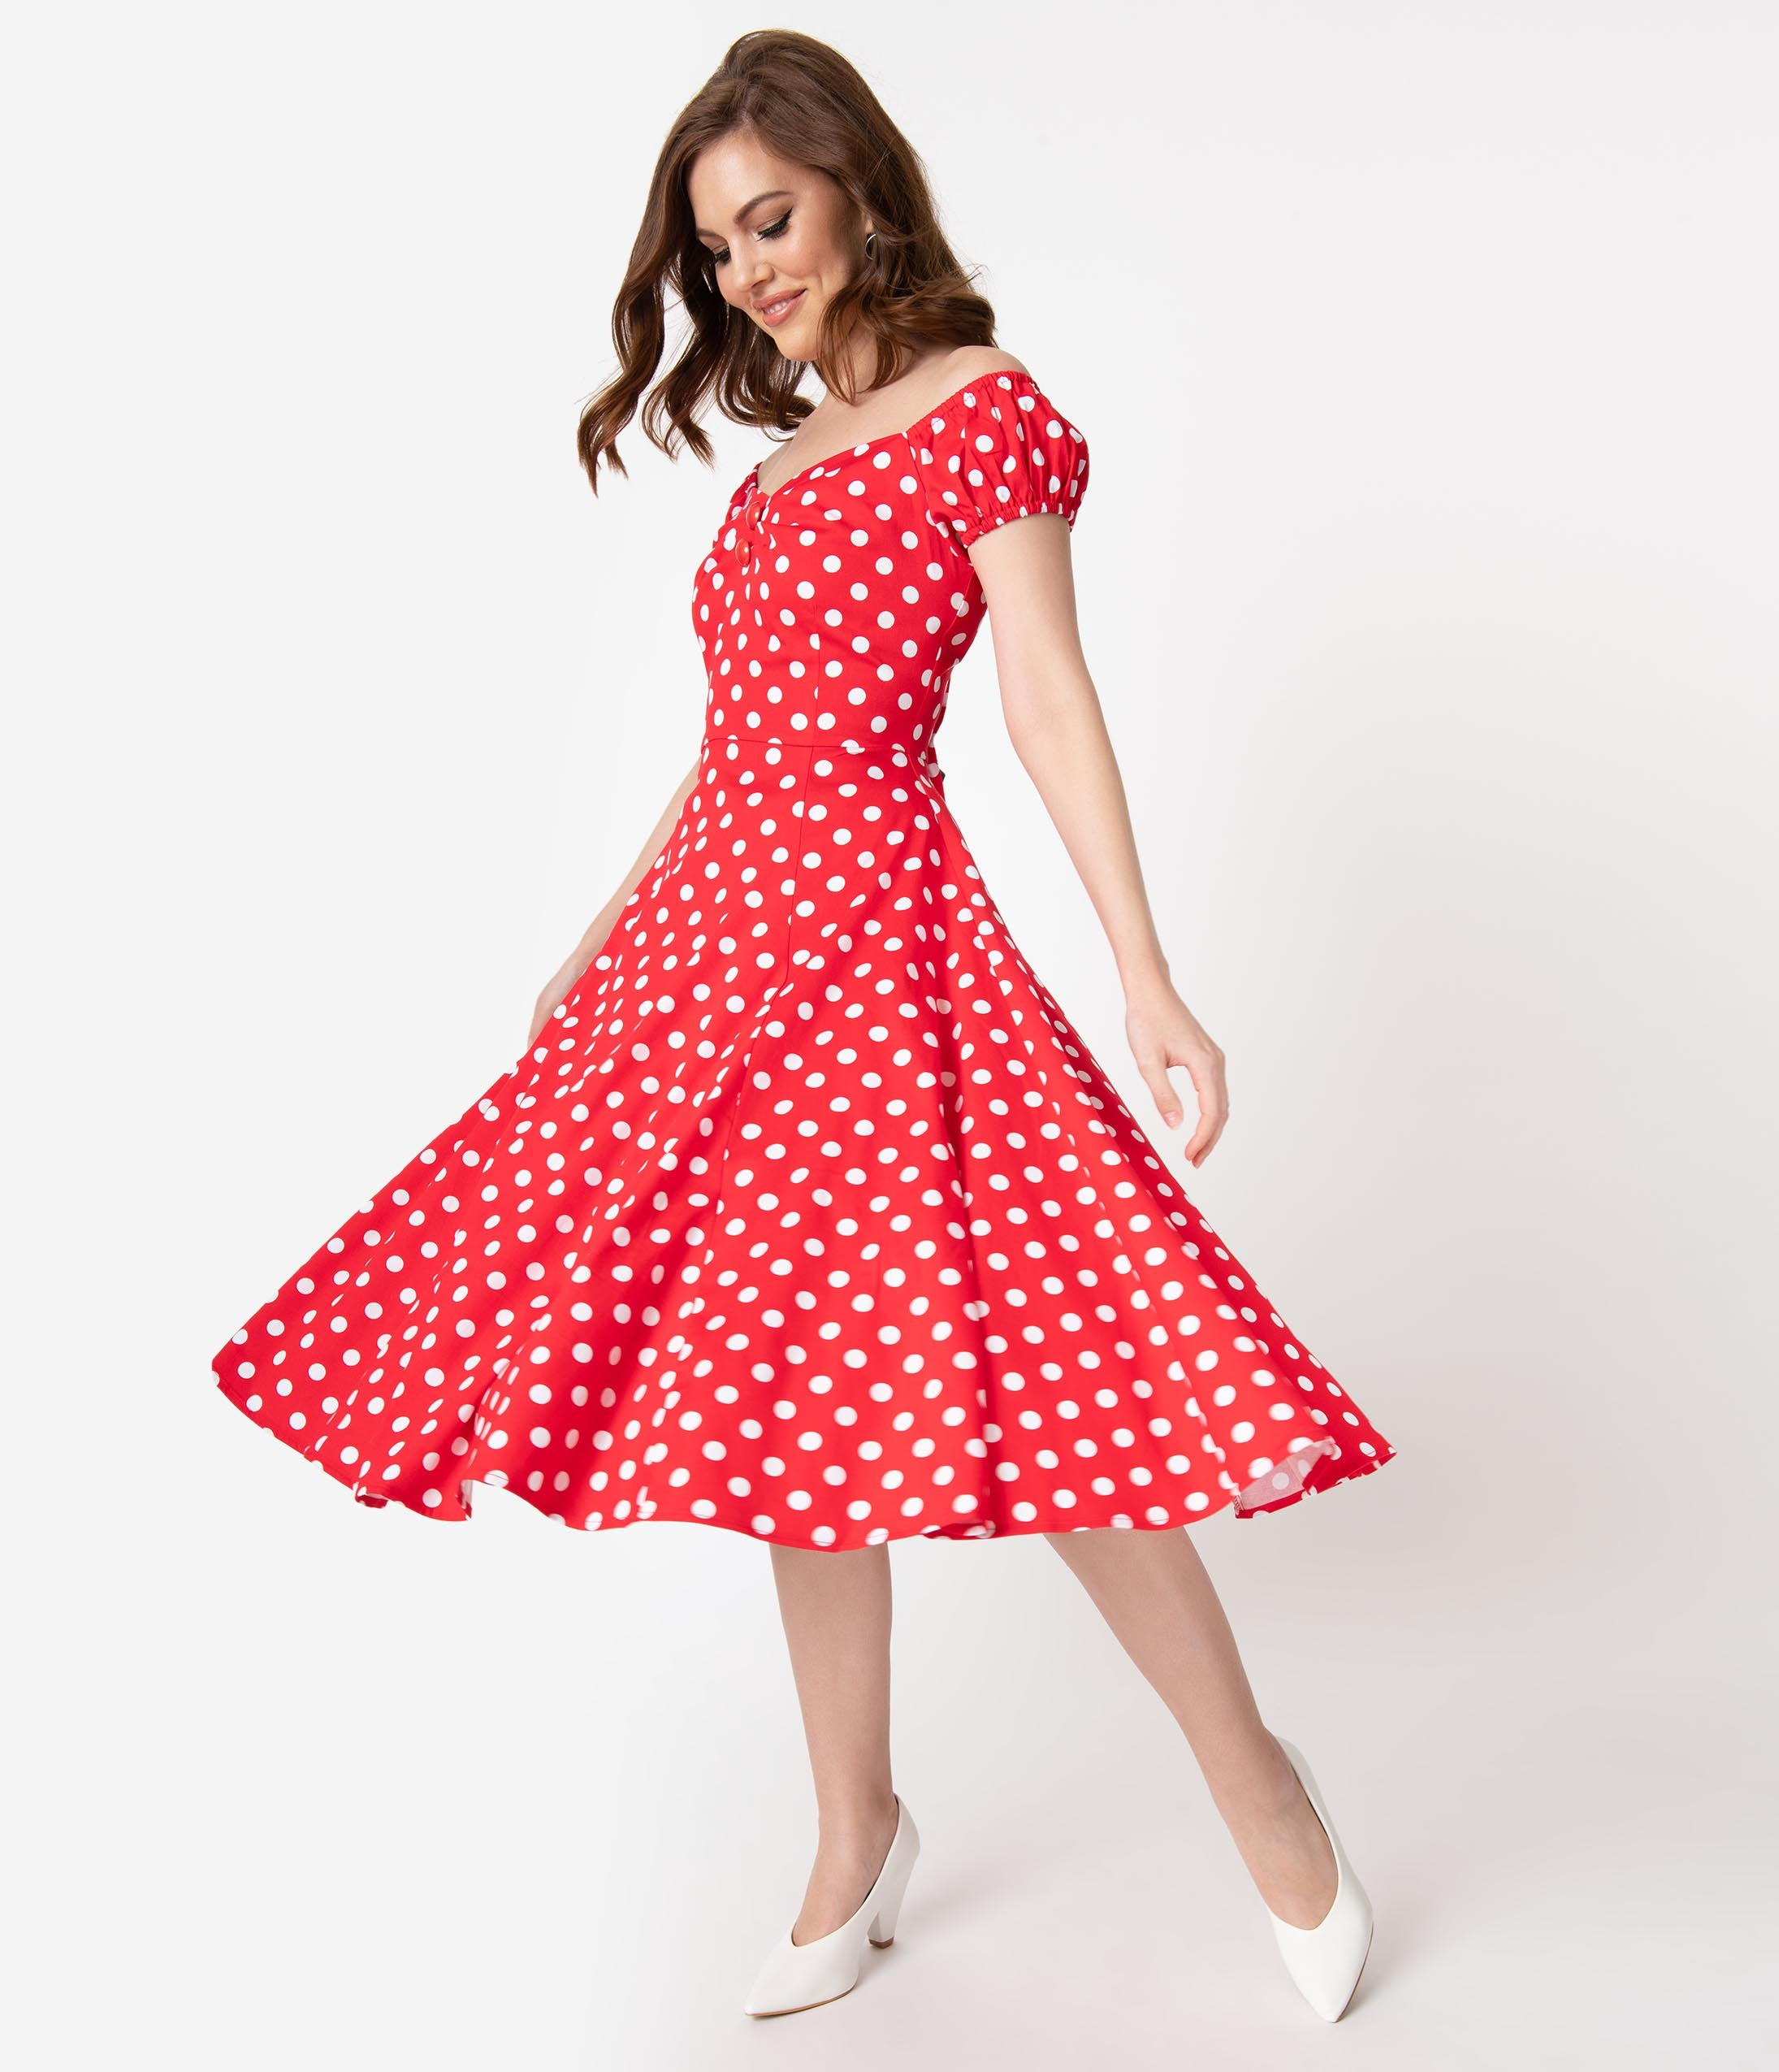 1950s Dresses, 50s Dresses | 1950s Style Dresses Collectif 1950S Style Red  White Polka Dot Dolores Swing Dress $68.00 AT vintagedancer.com